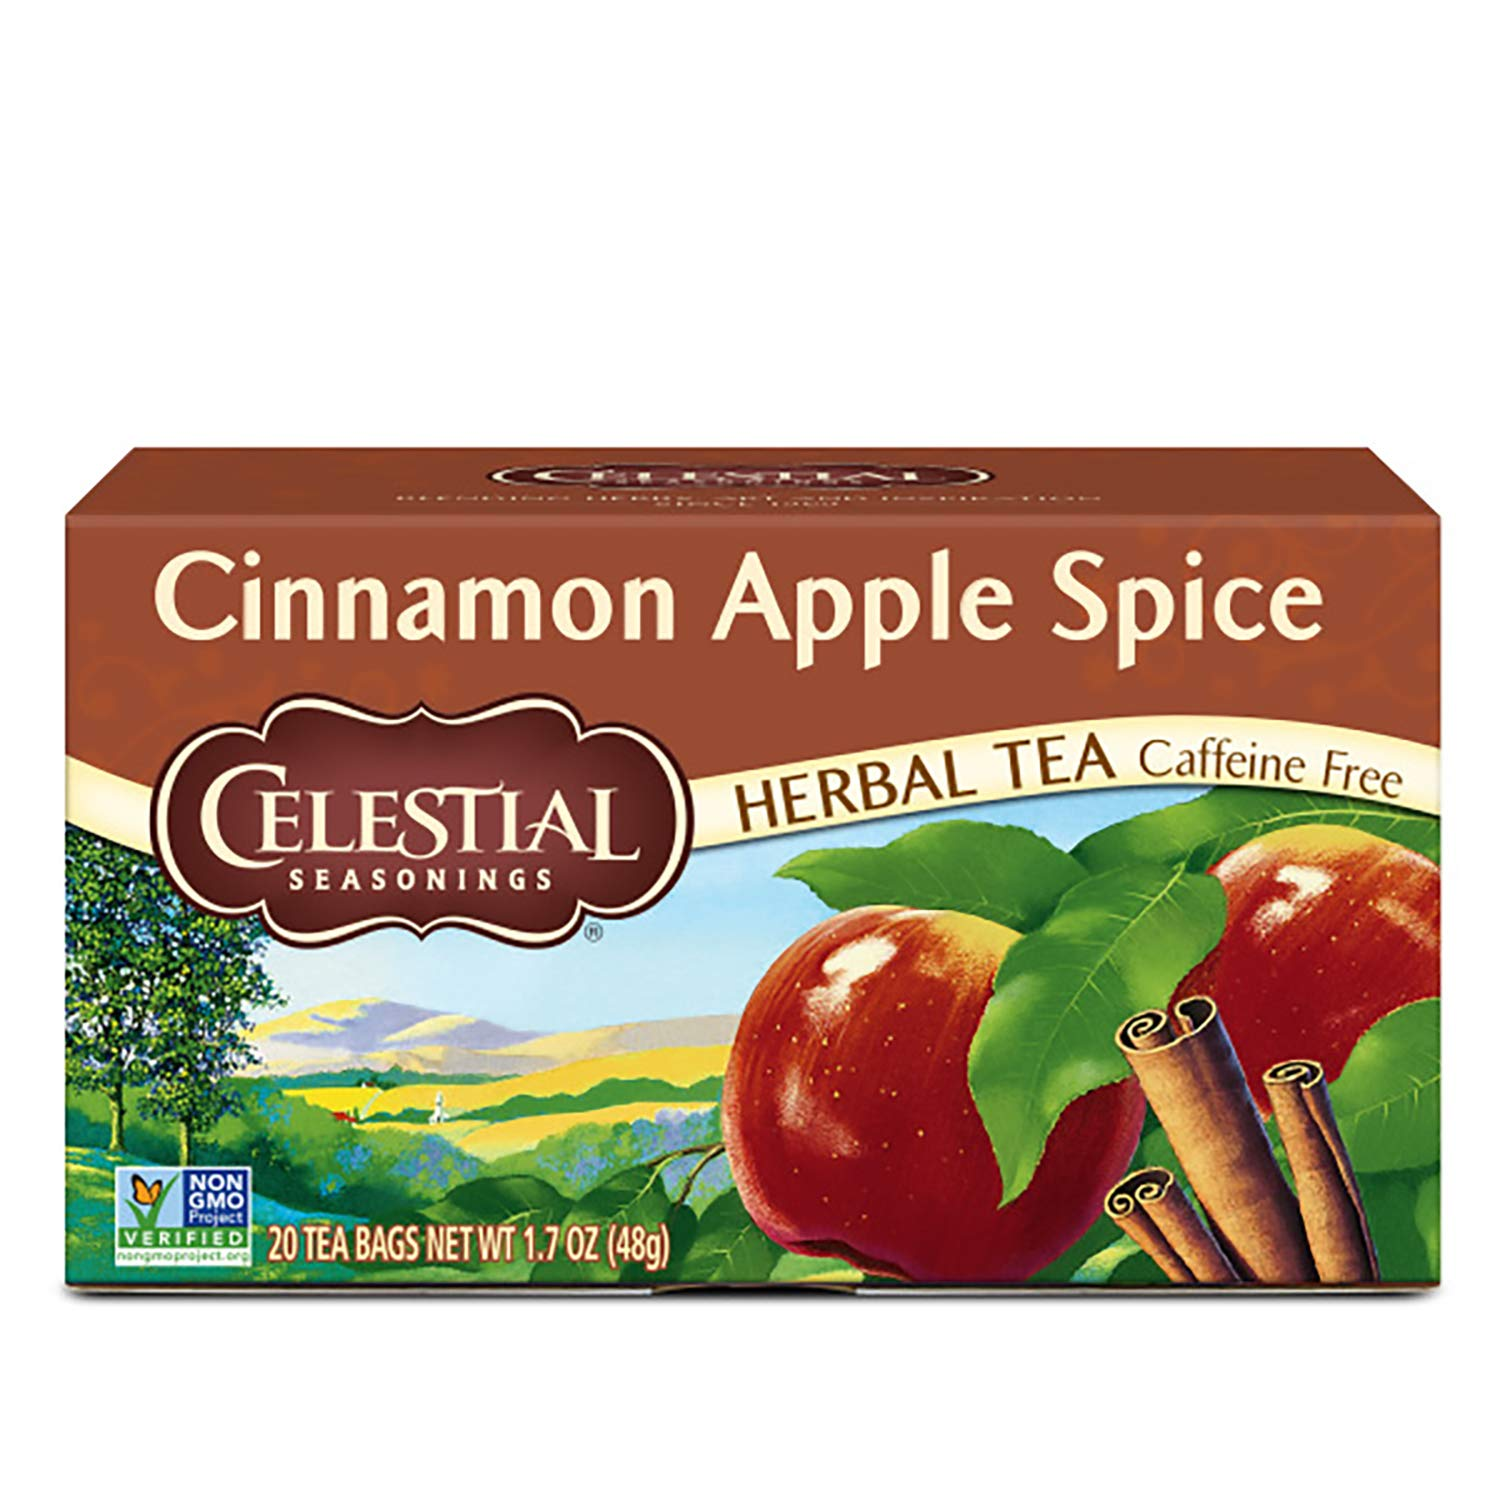 Celestial Seasonings Herbal Tea, Cinnamon Apple Spice, 20 Count